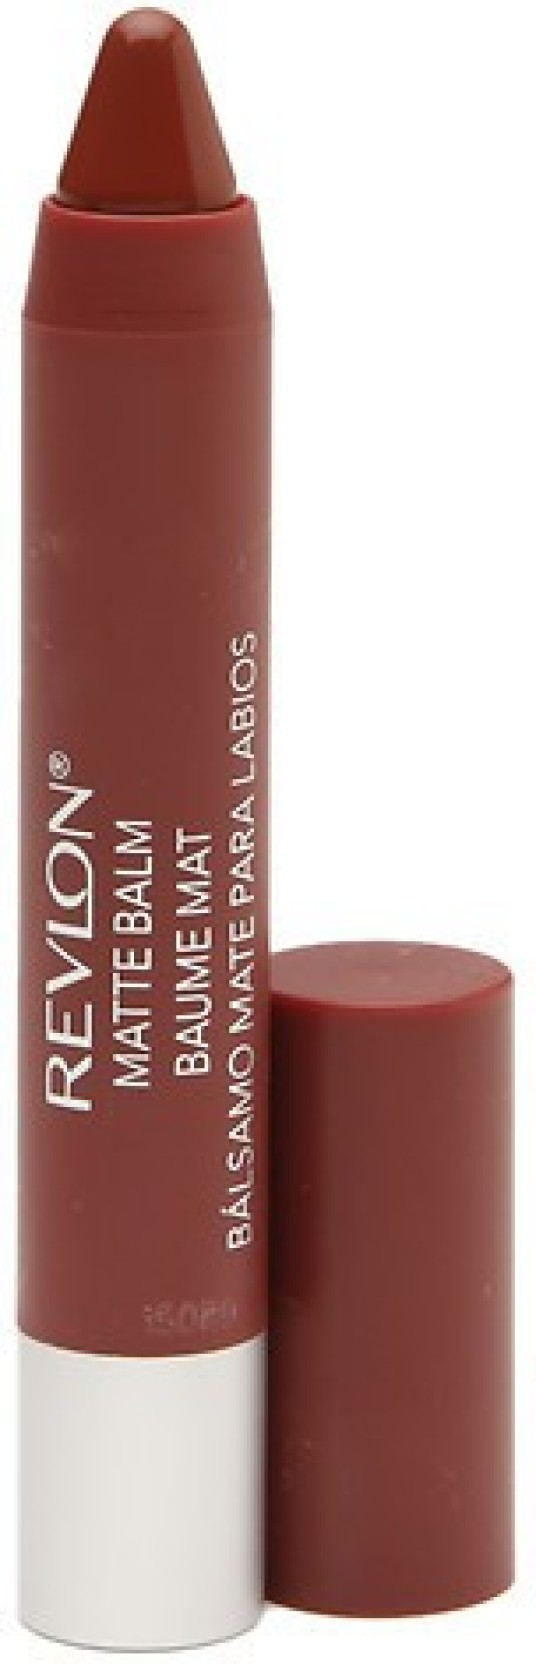 Revlon Colorburst Matte Balm Price In India Buy Collorbust Add To Cart